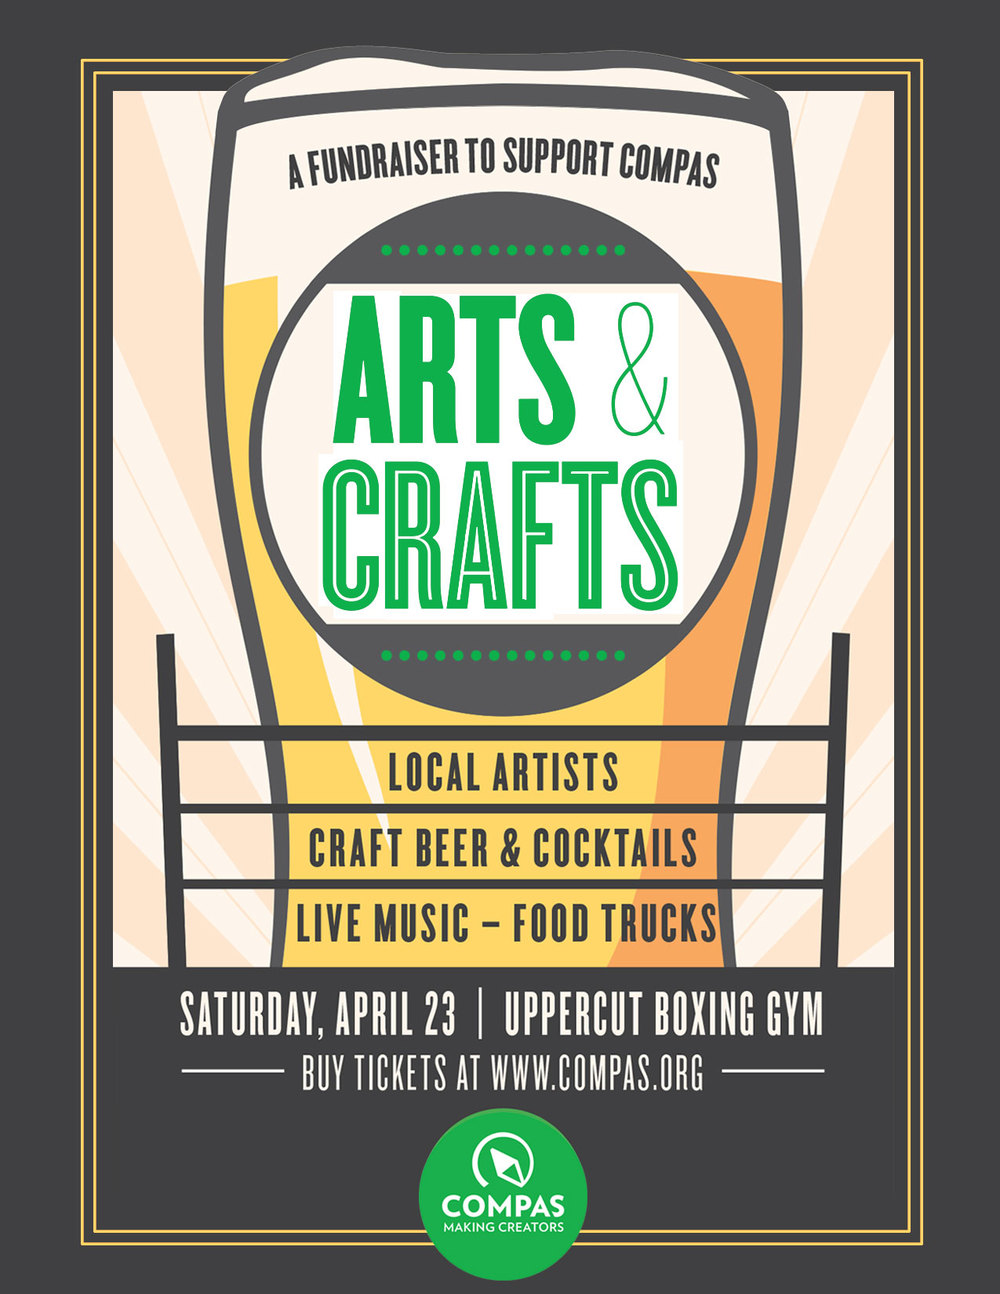 Get YOUR Arts & Crafts info here!